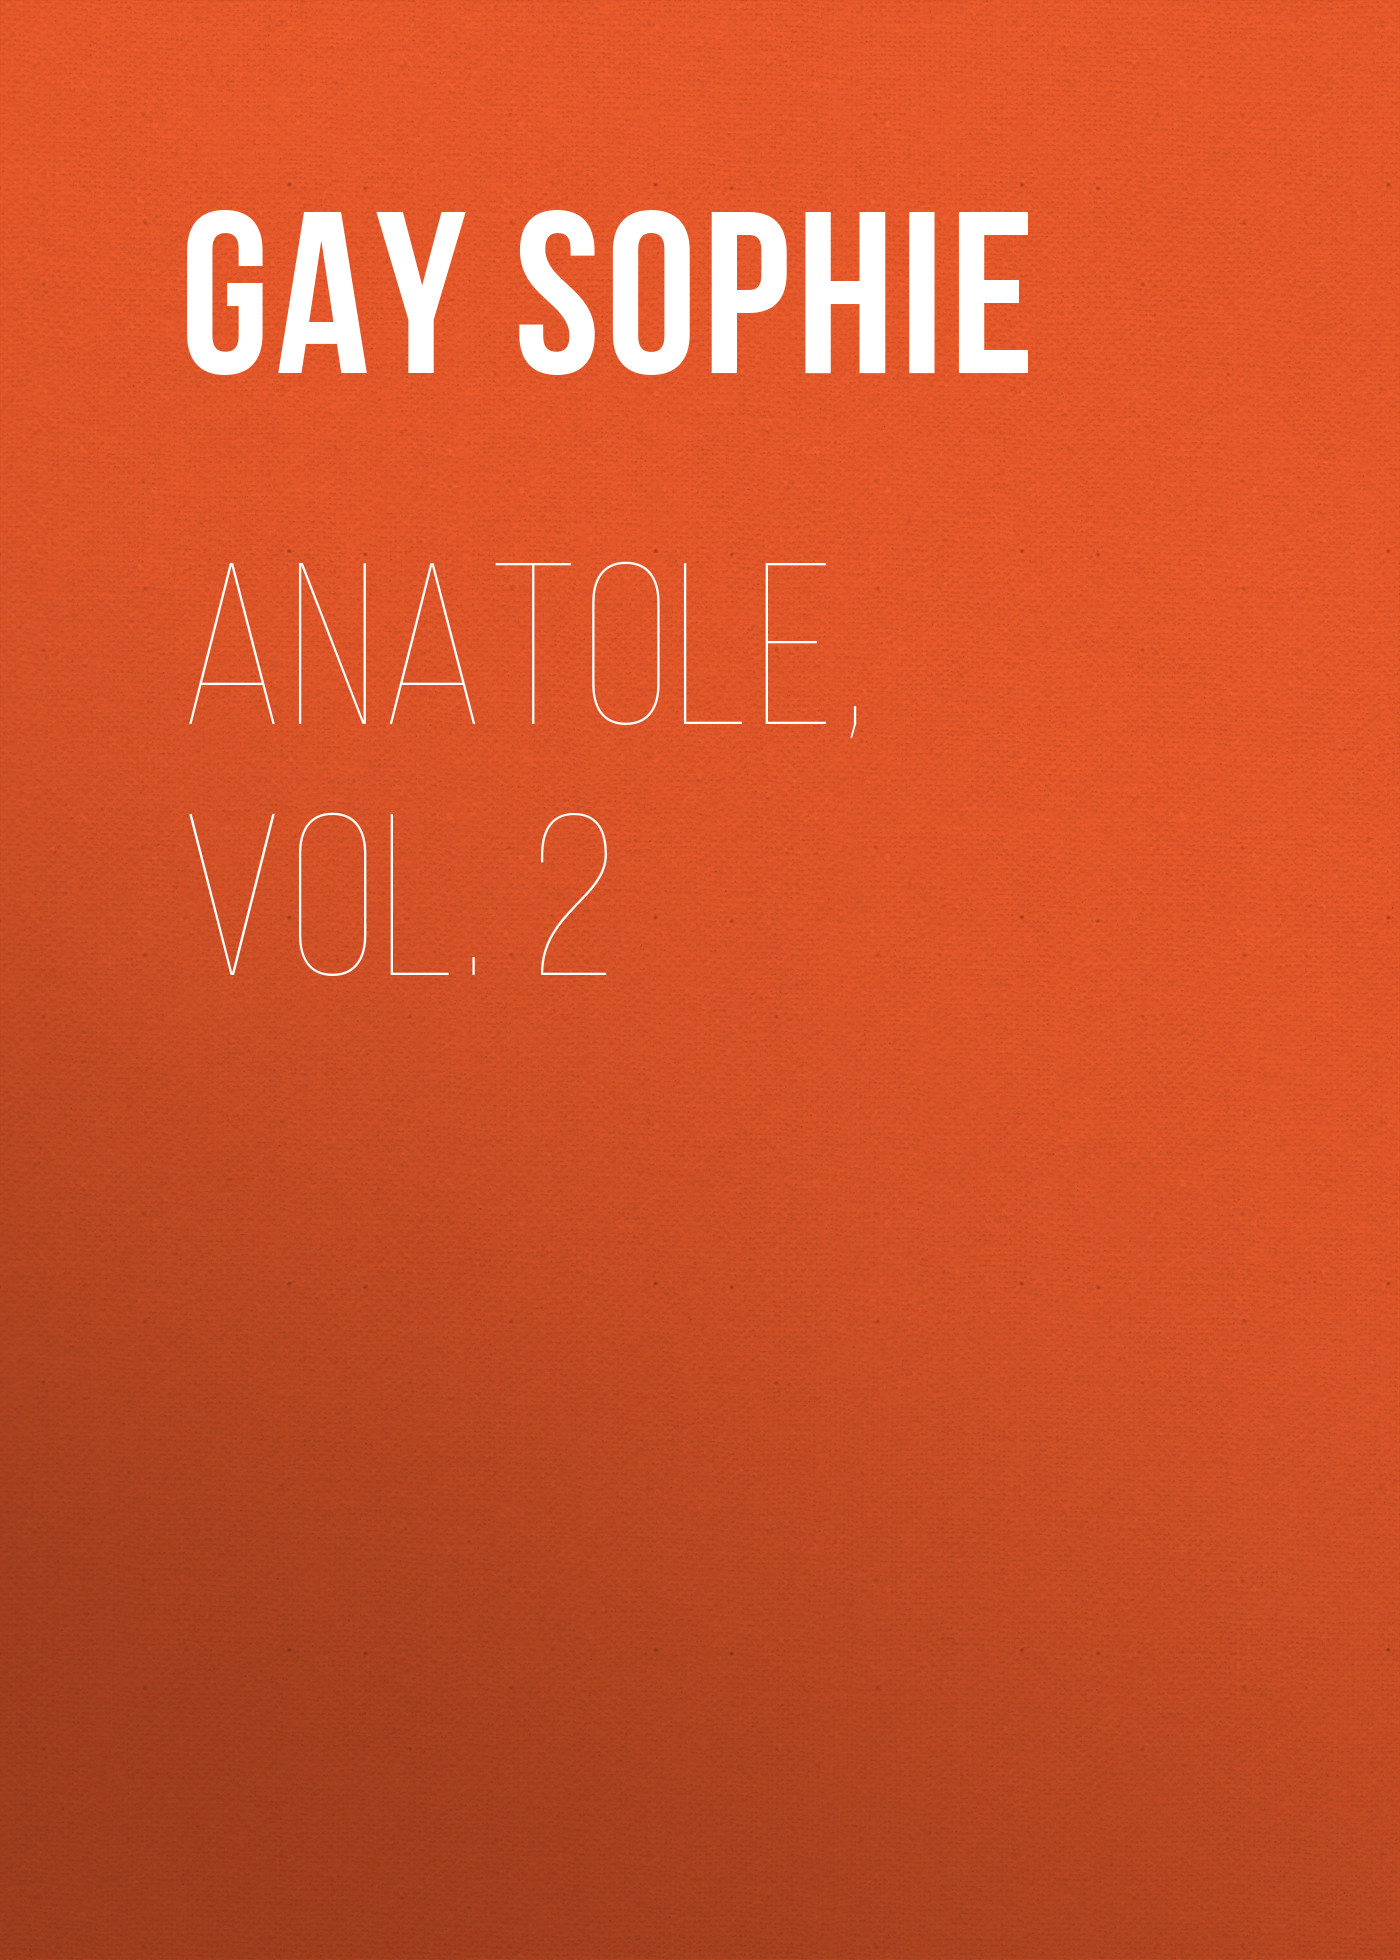 Gay Sophie Anatole, Vol. 2